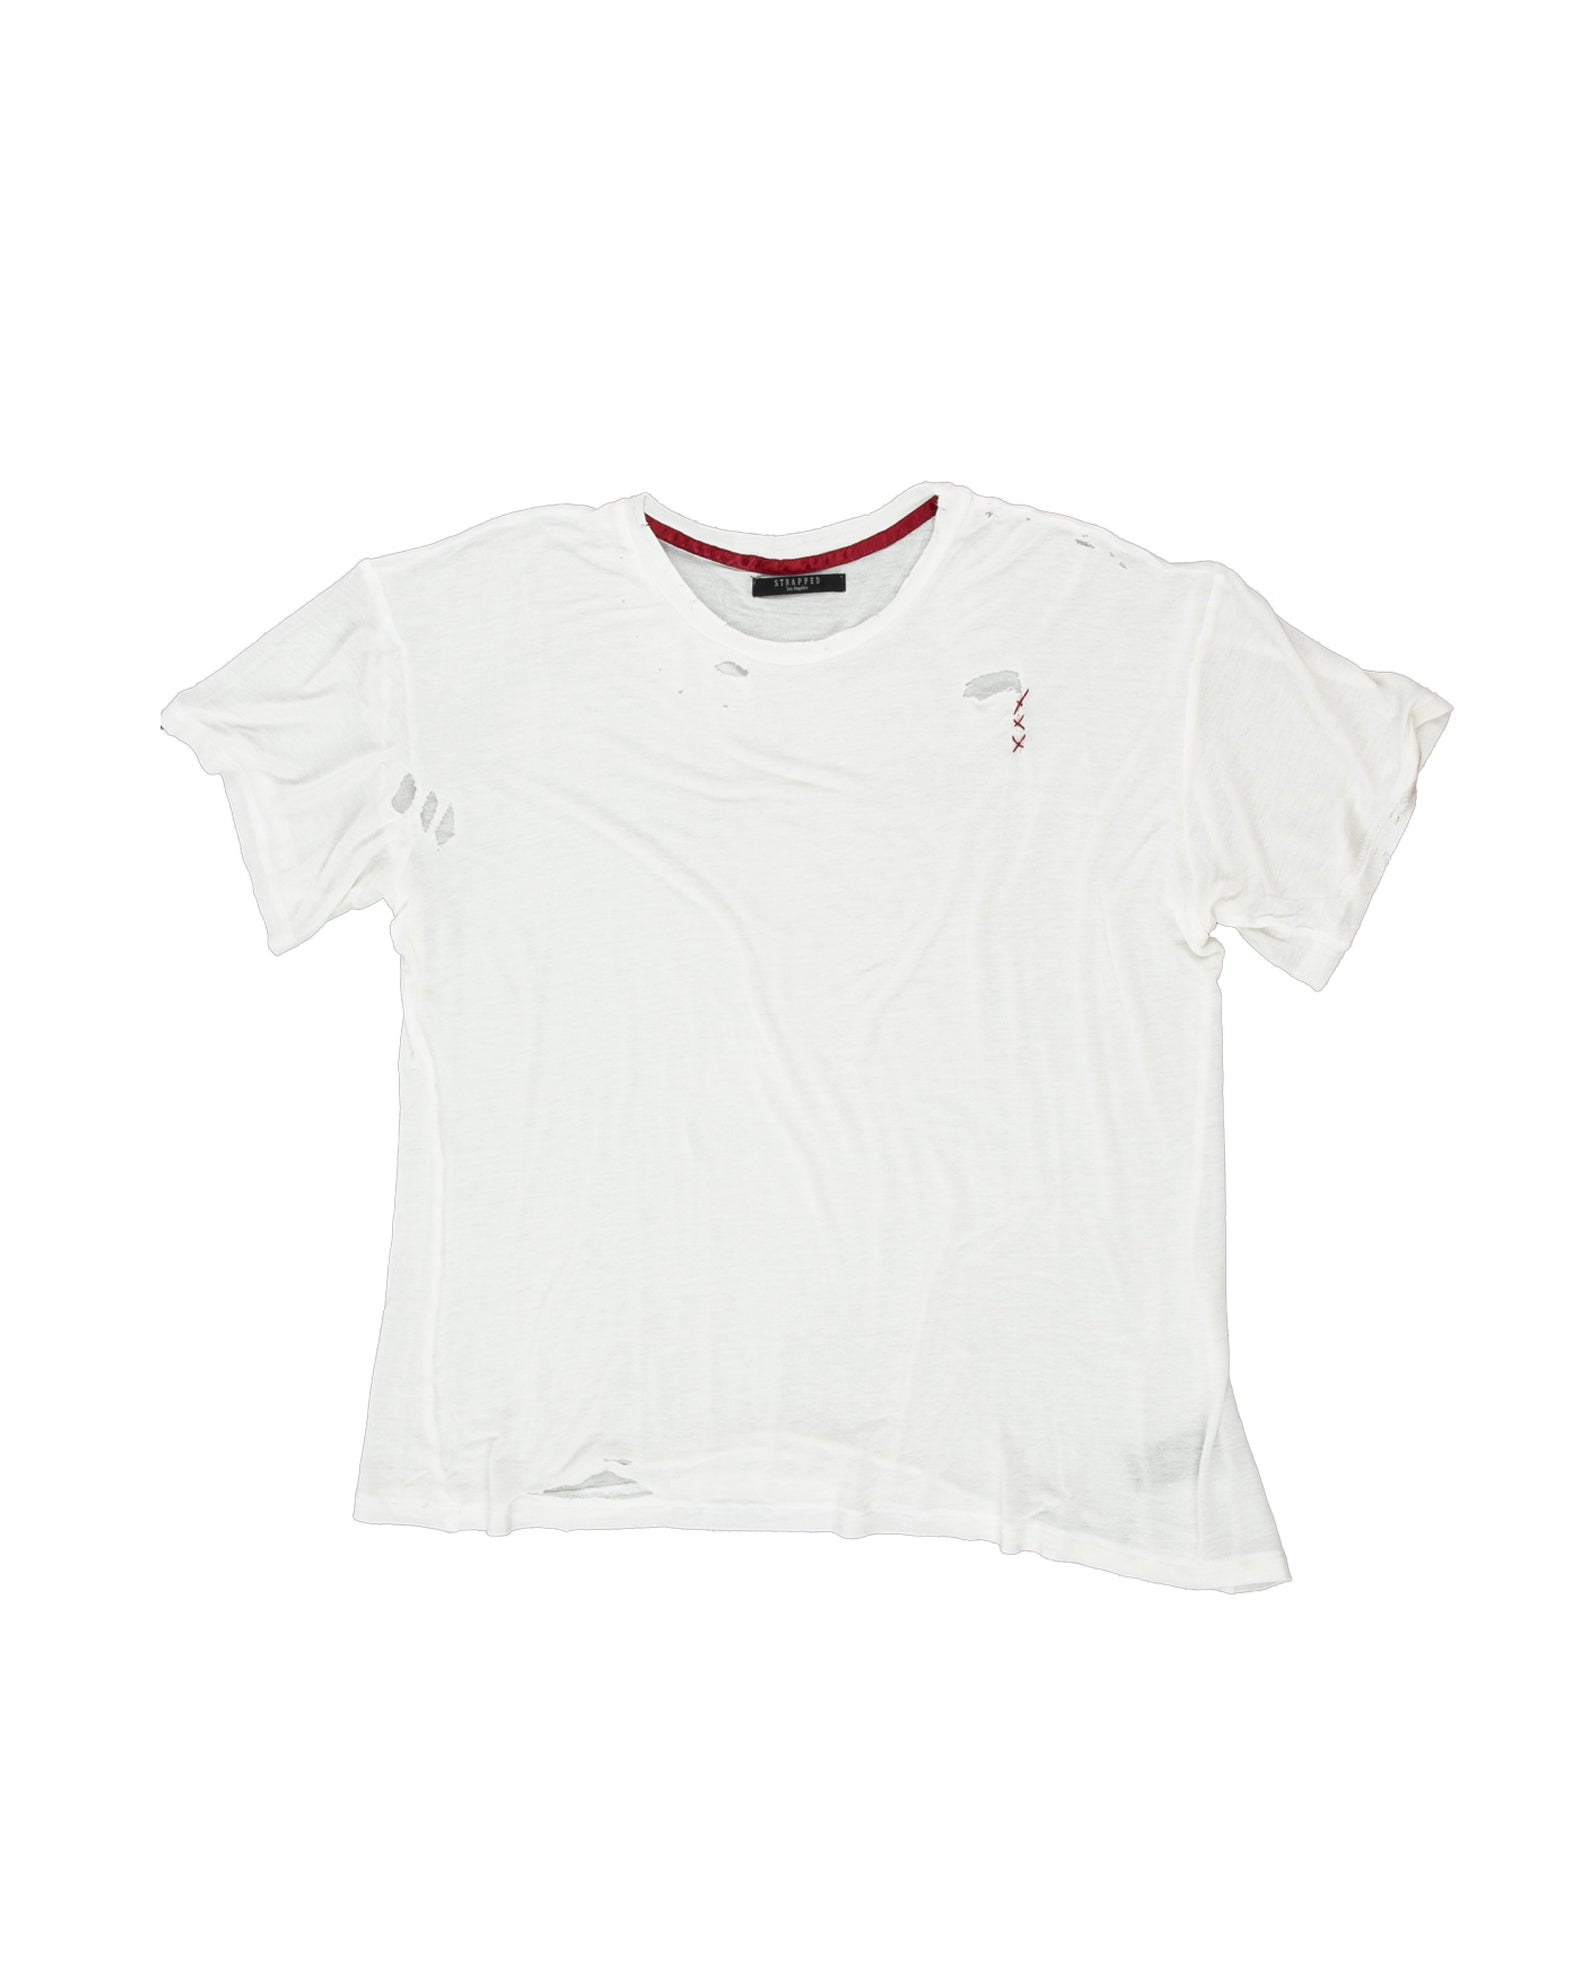 Hand-stitched Tee in Ivory